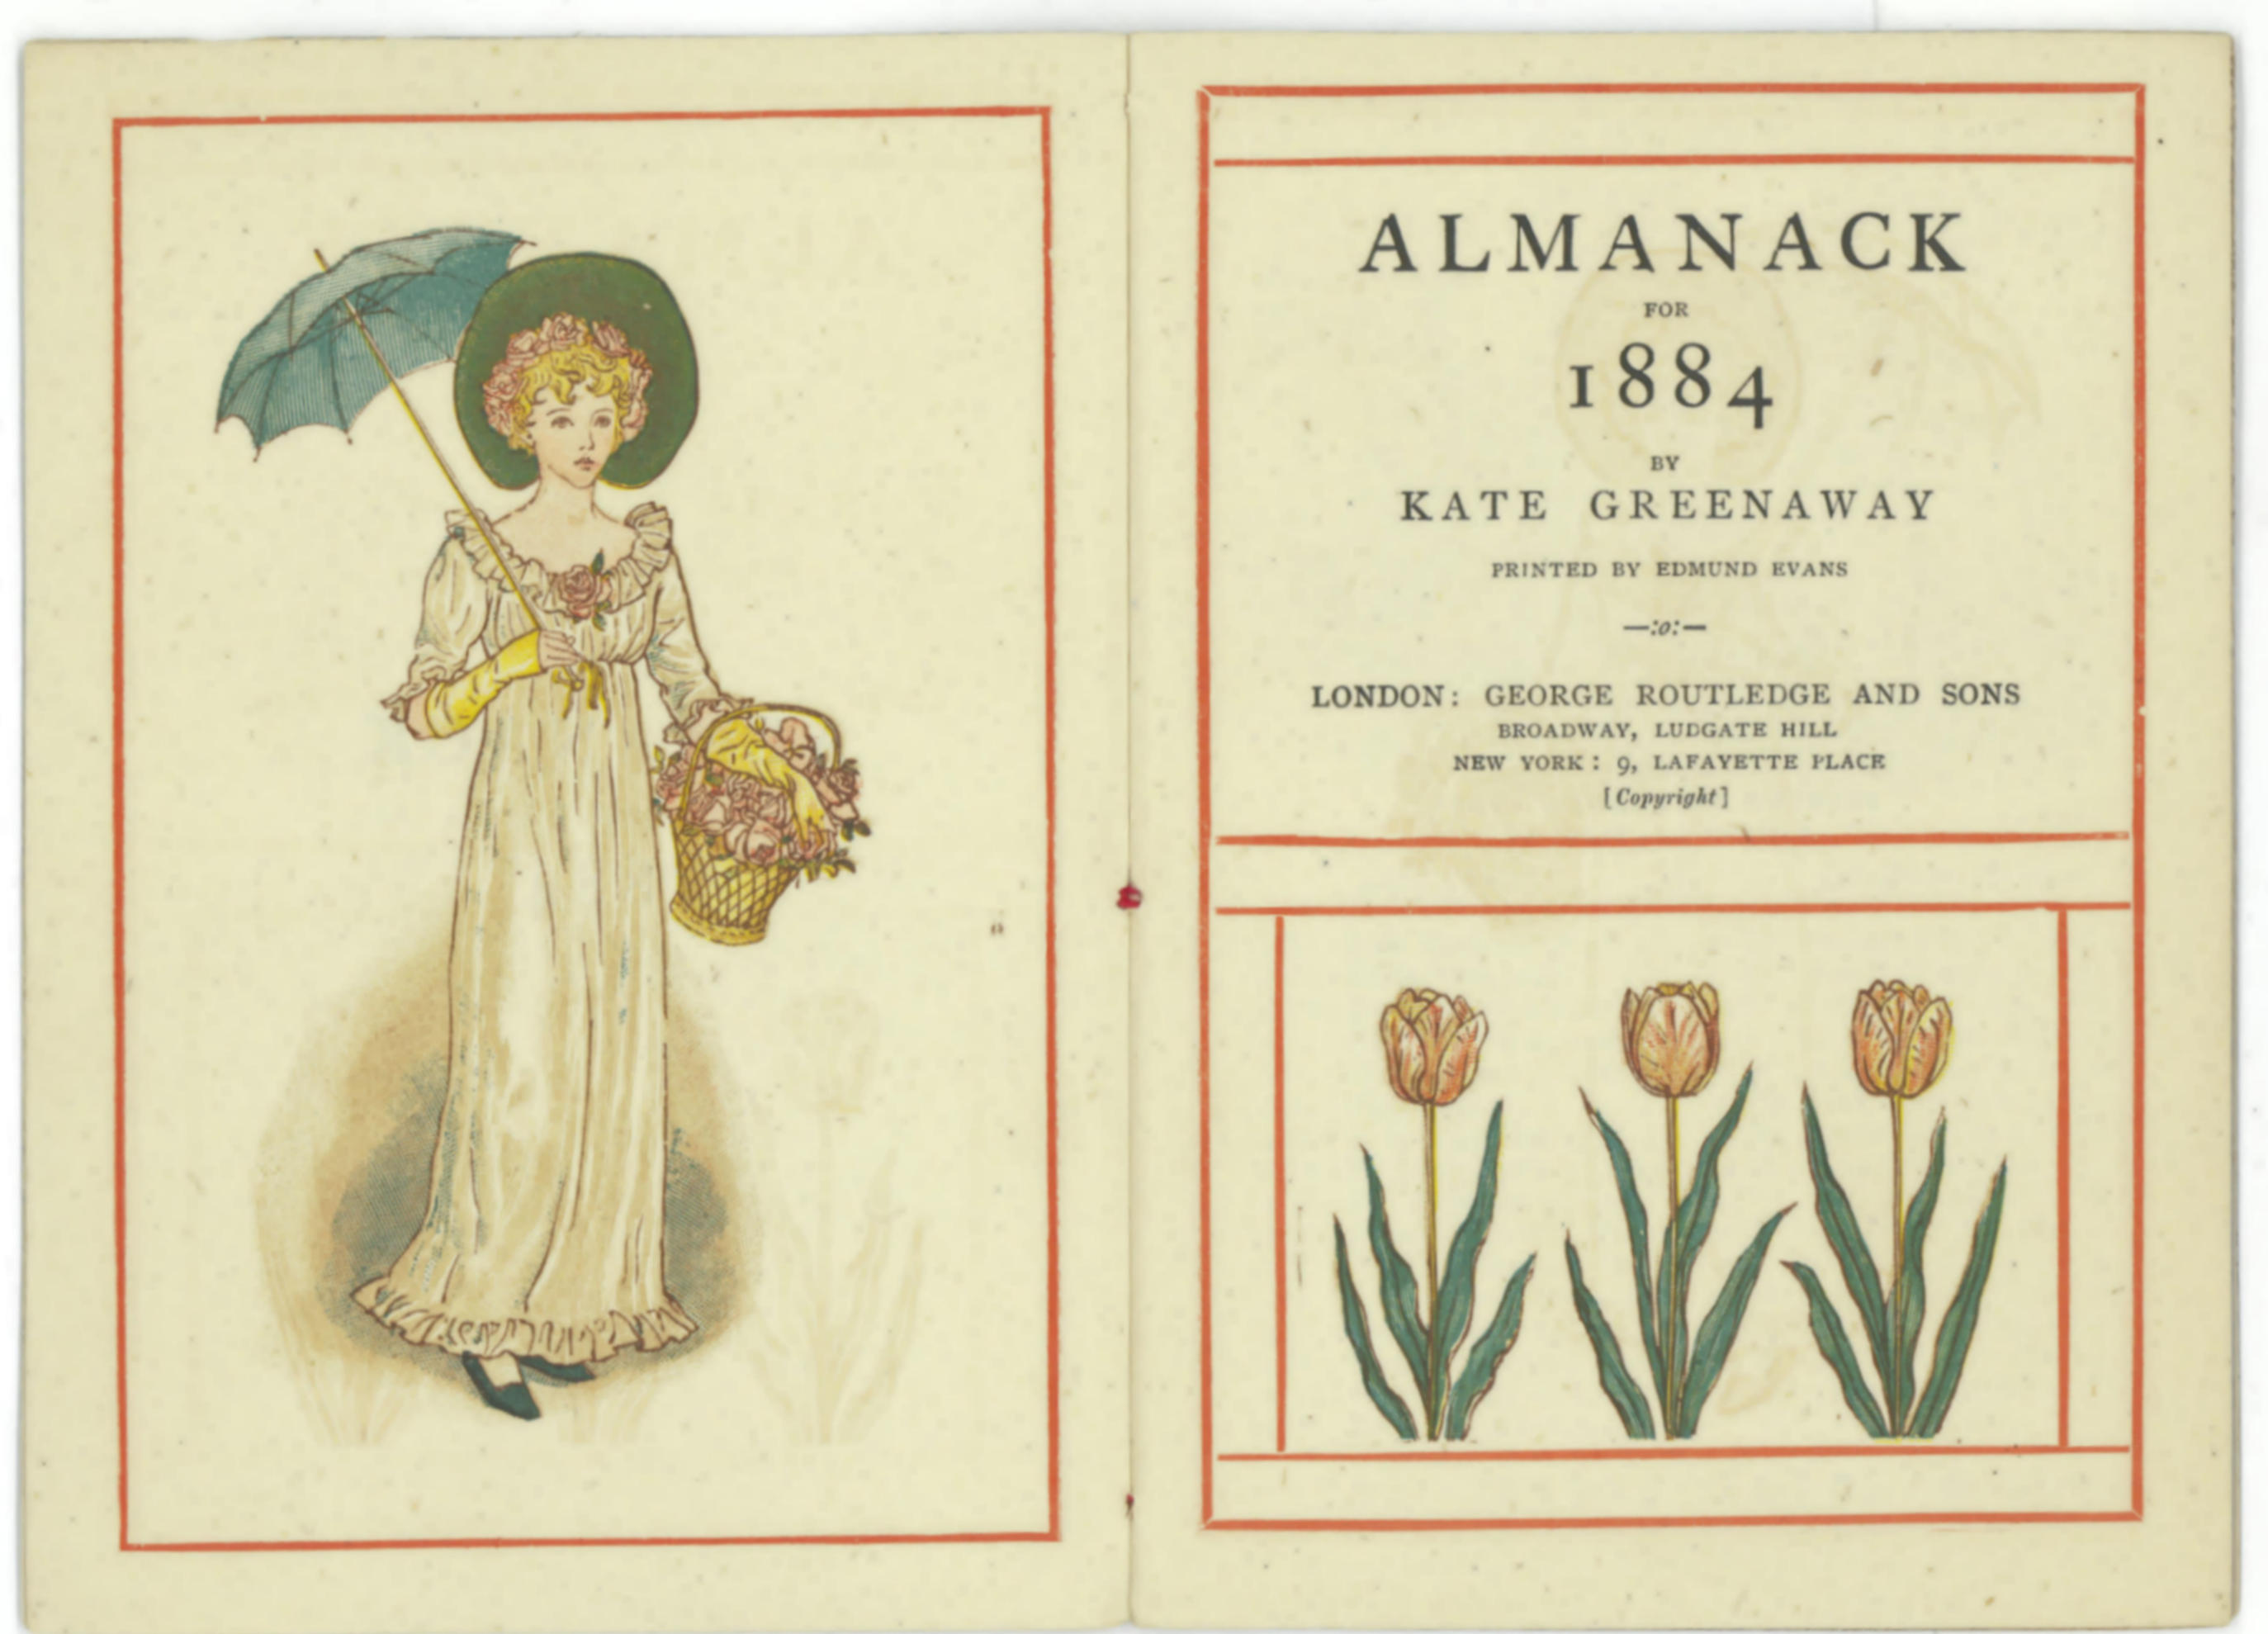 Title page for Almanack 1884 by Kate Greenaway